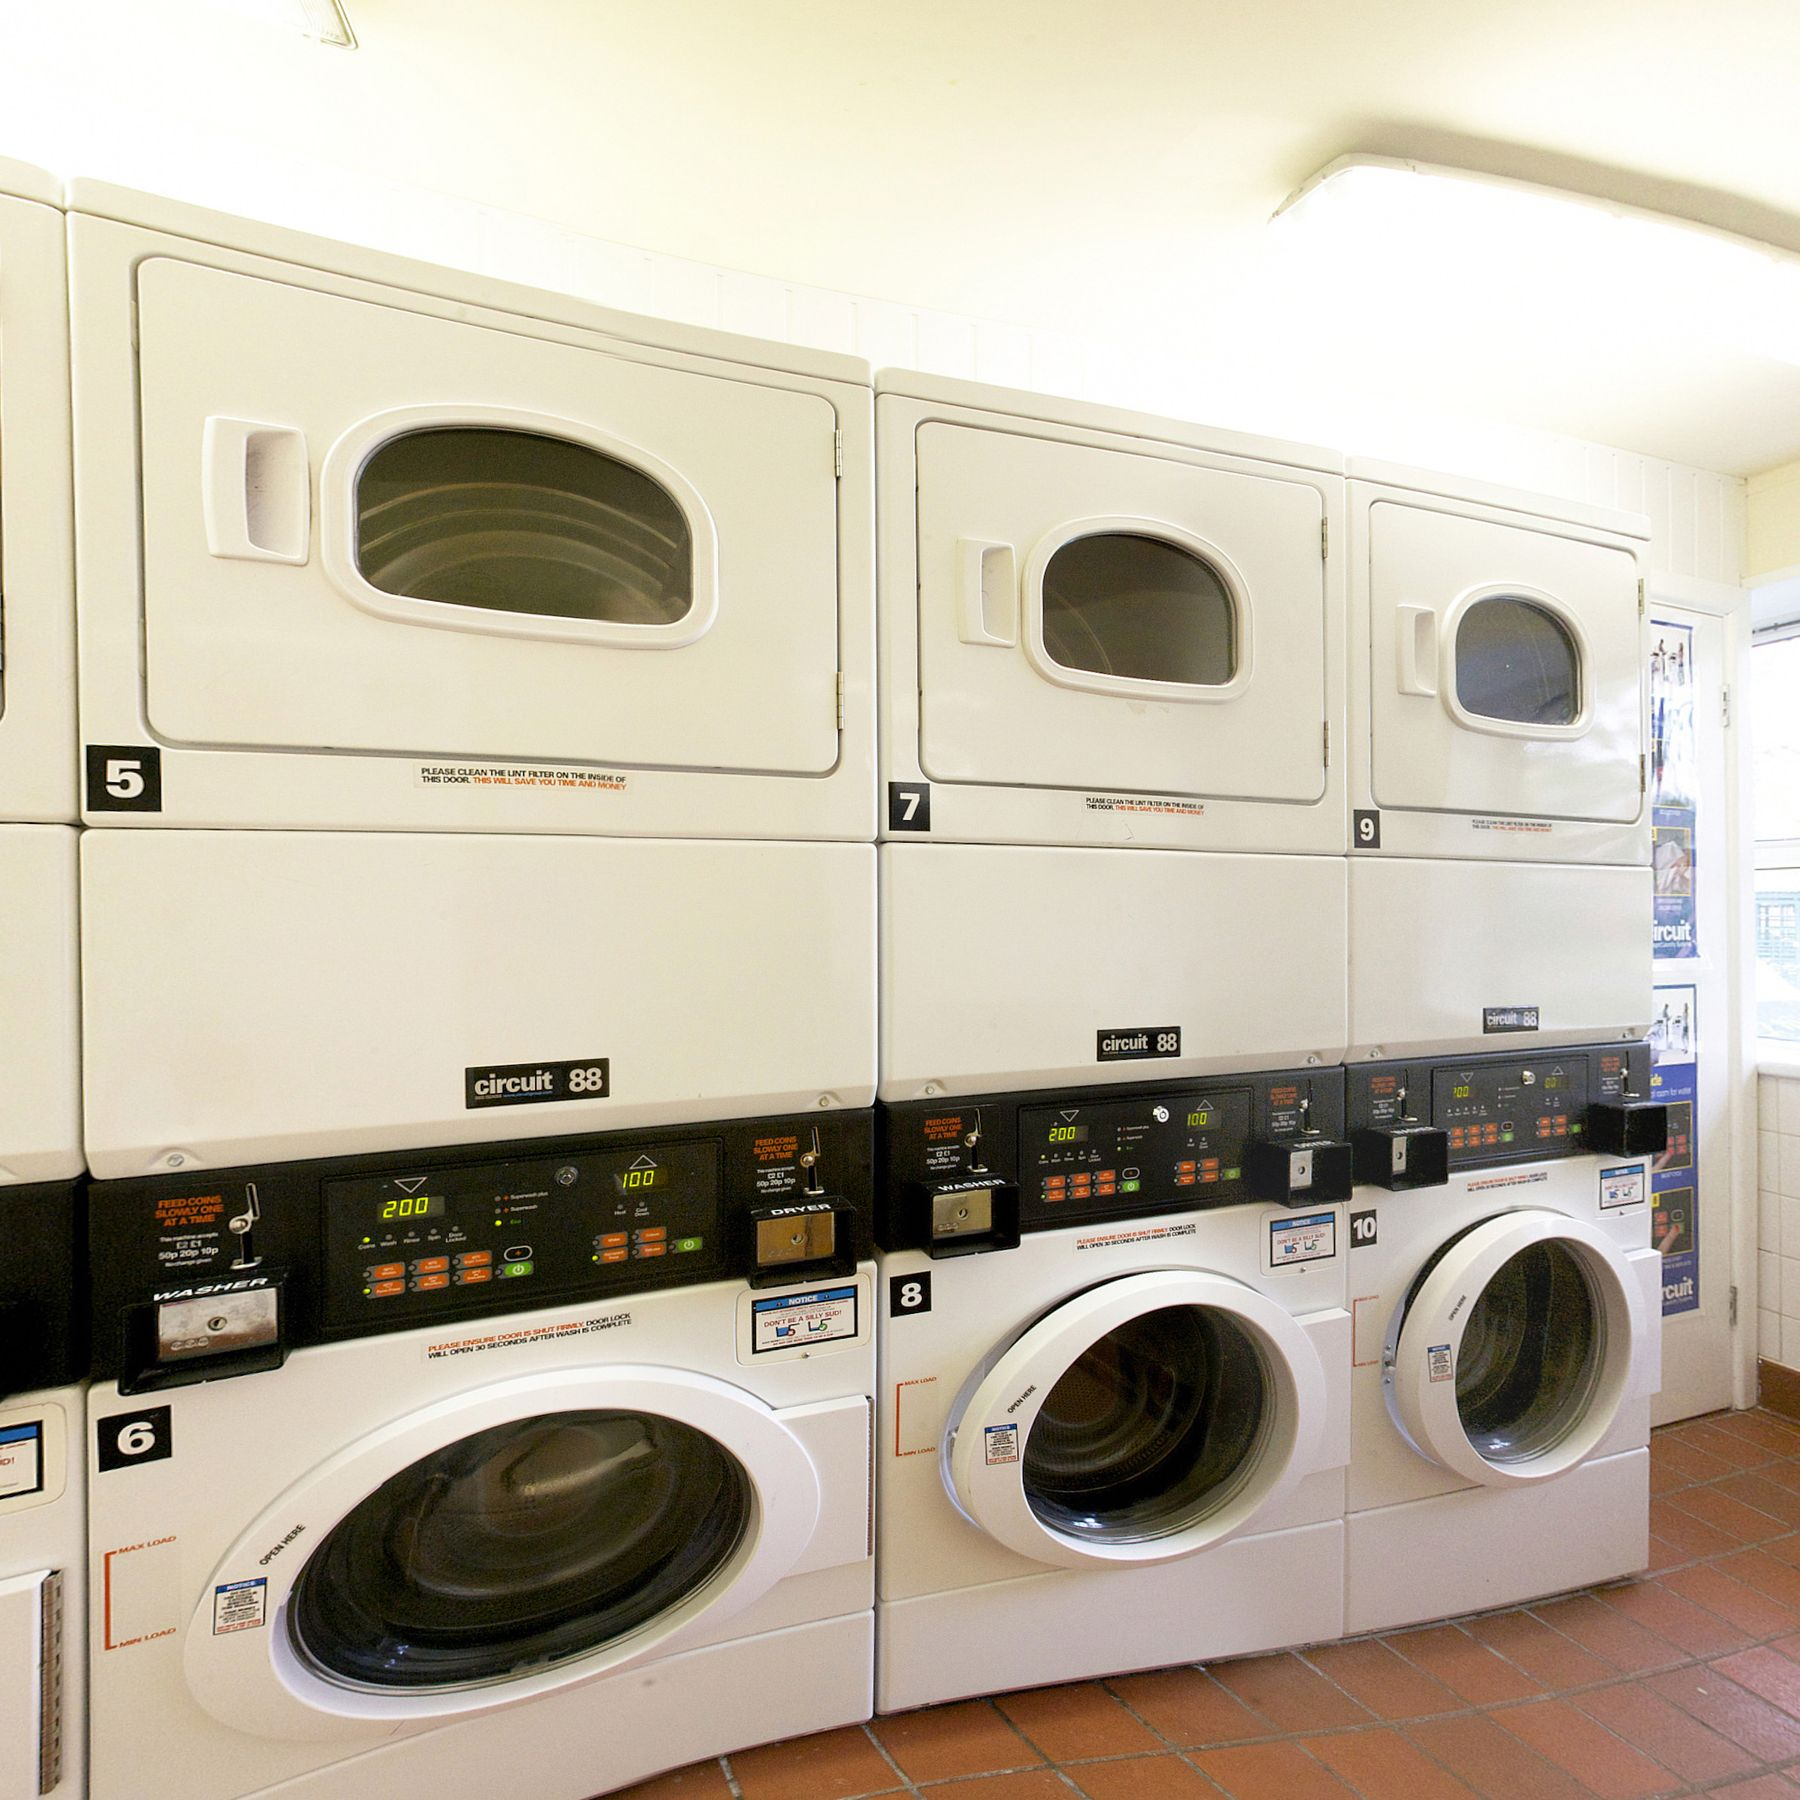 Peverell laundry